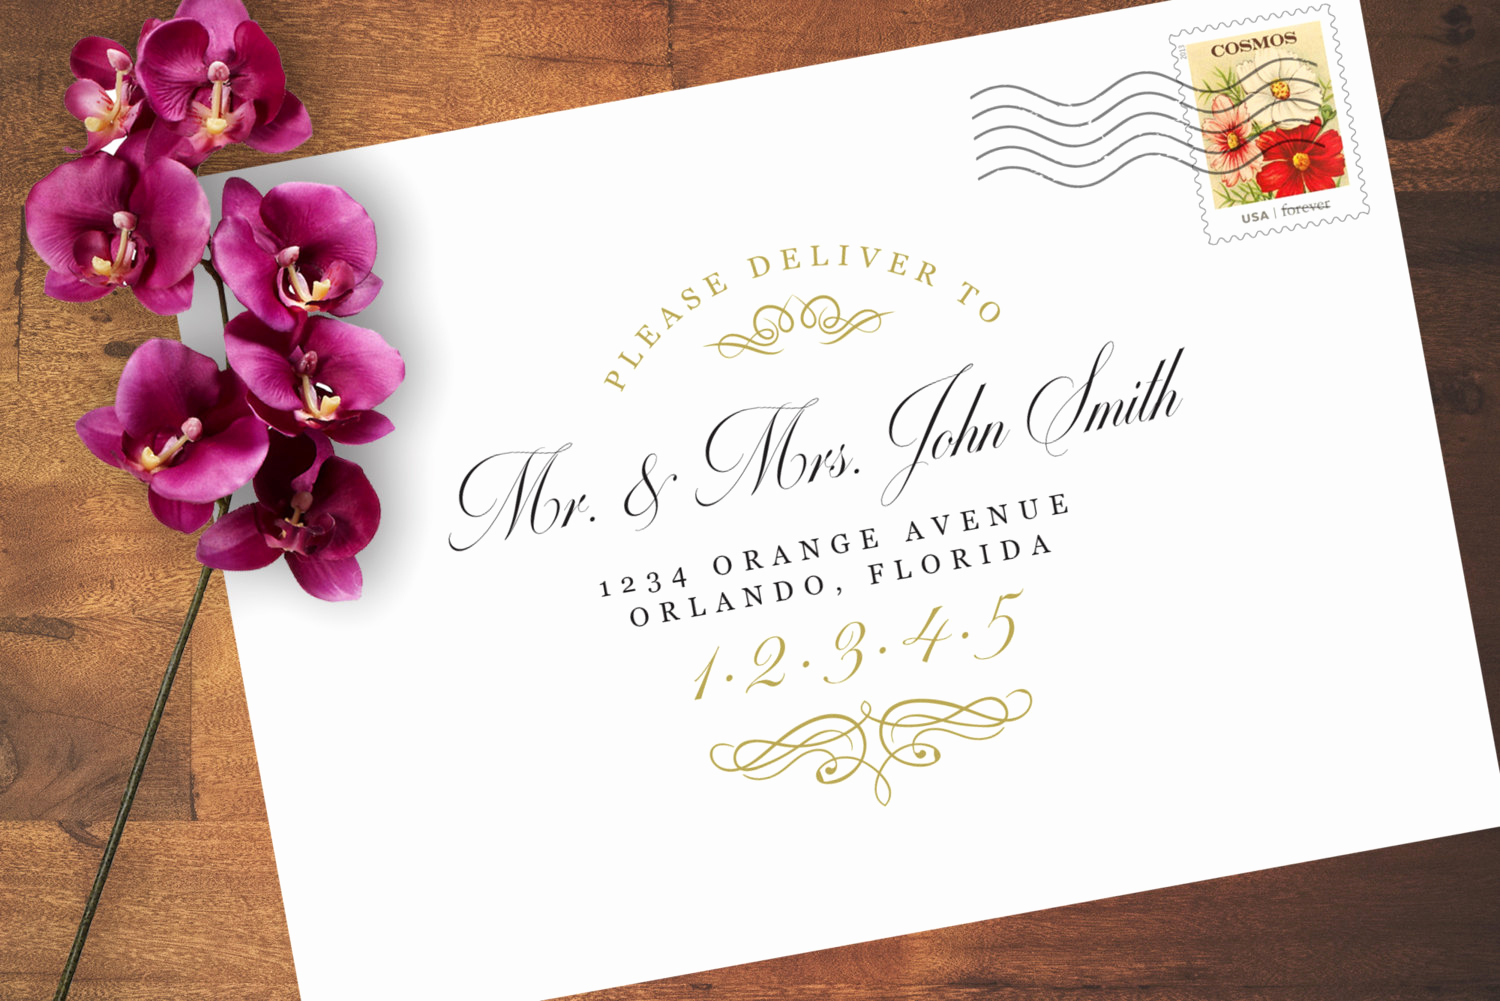 Wedding Invitation Envelopes Templates Fresh Wedding Envelope Address Word Template Vintage Style Black